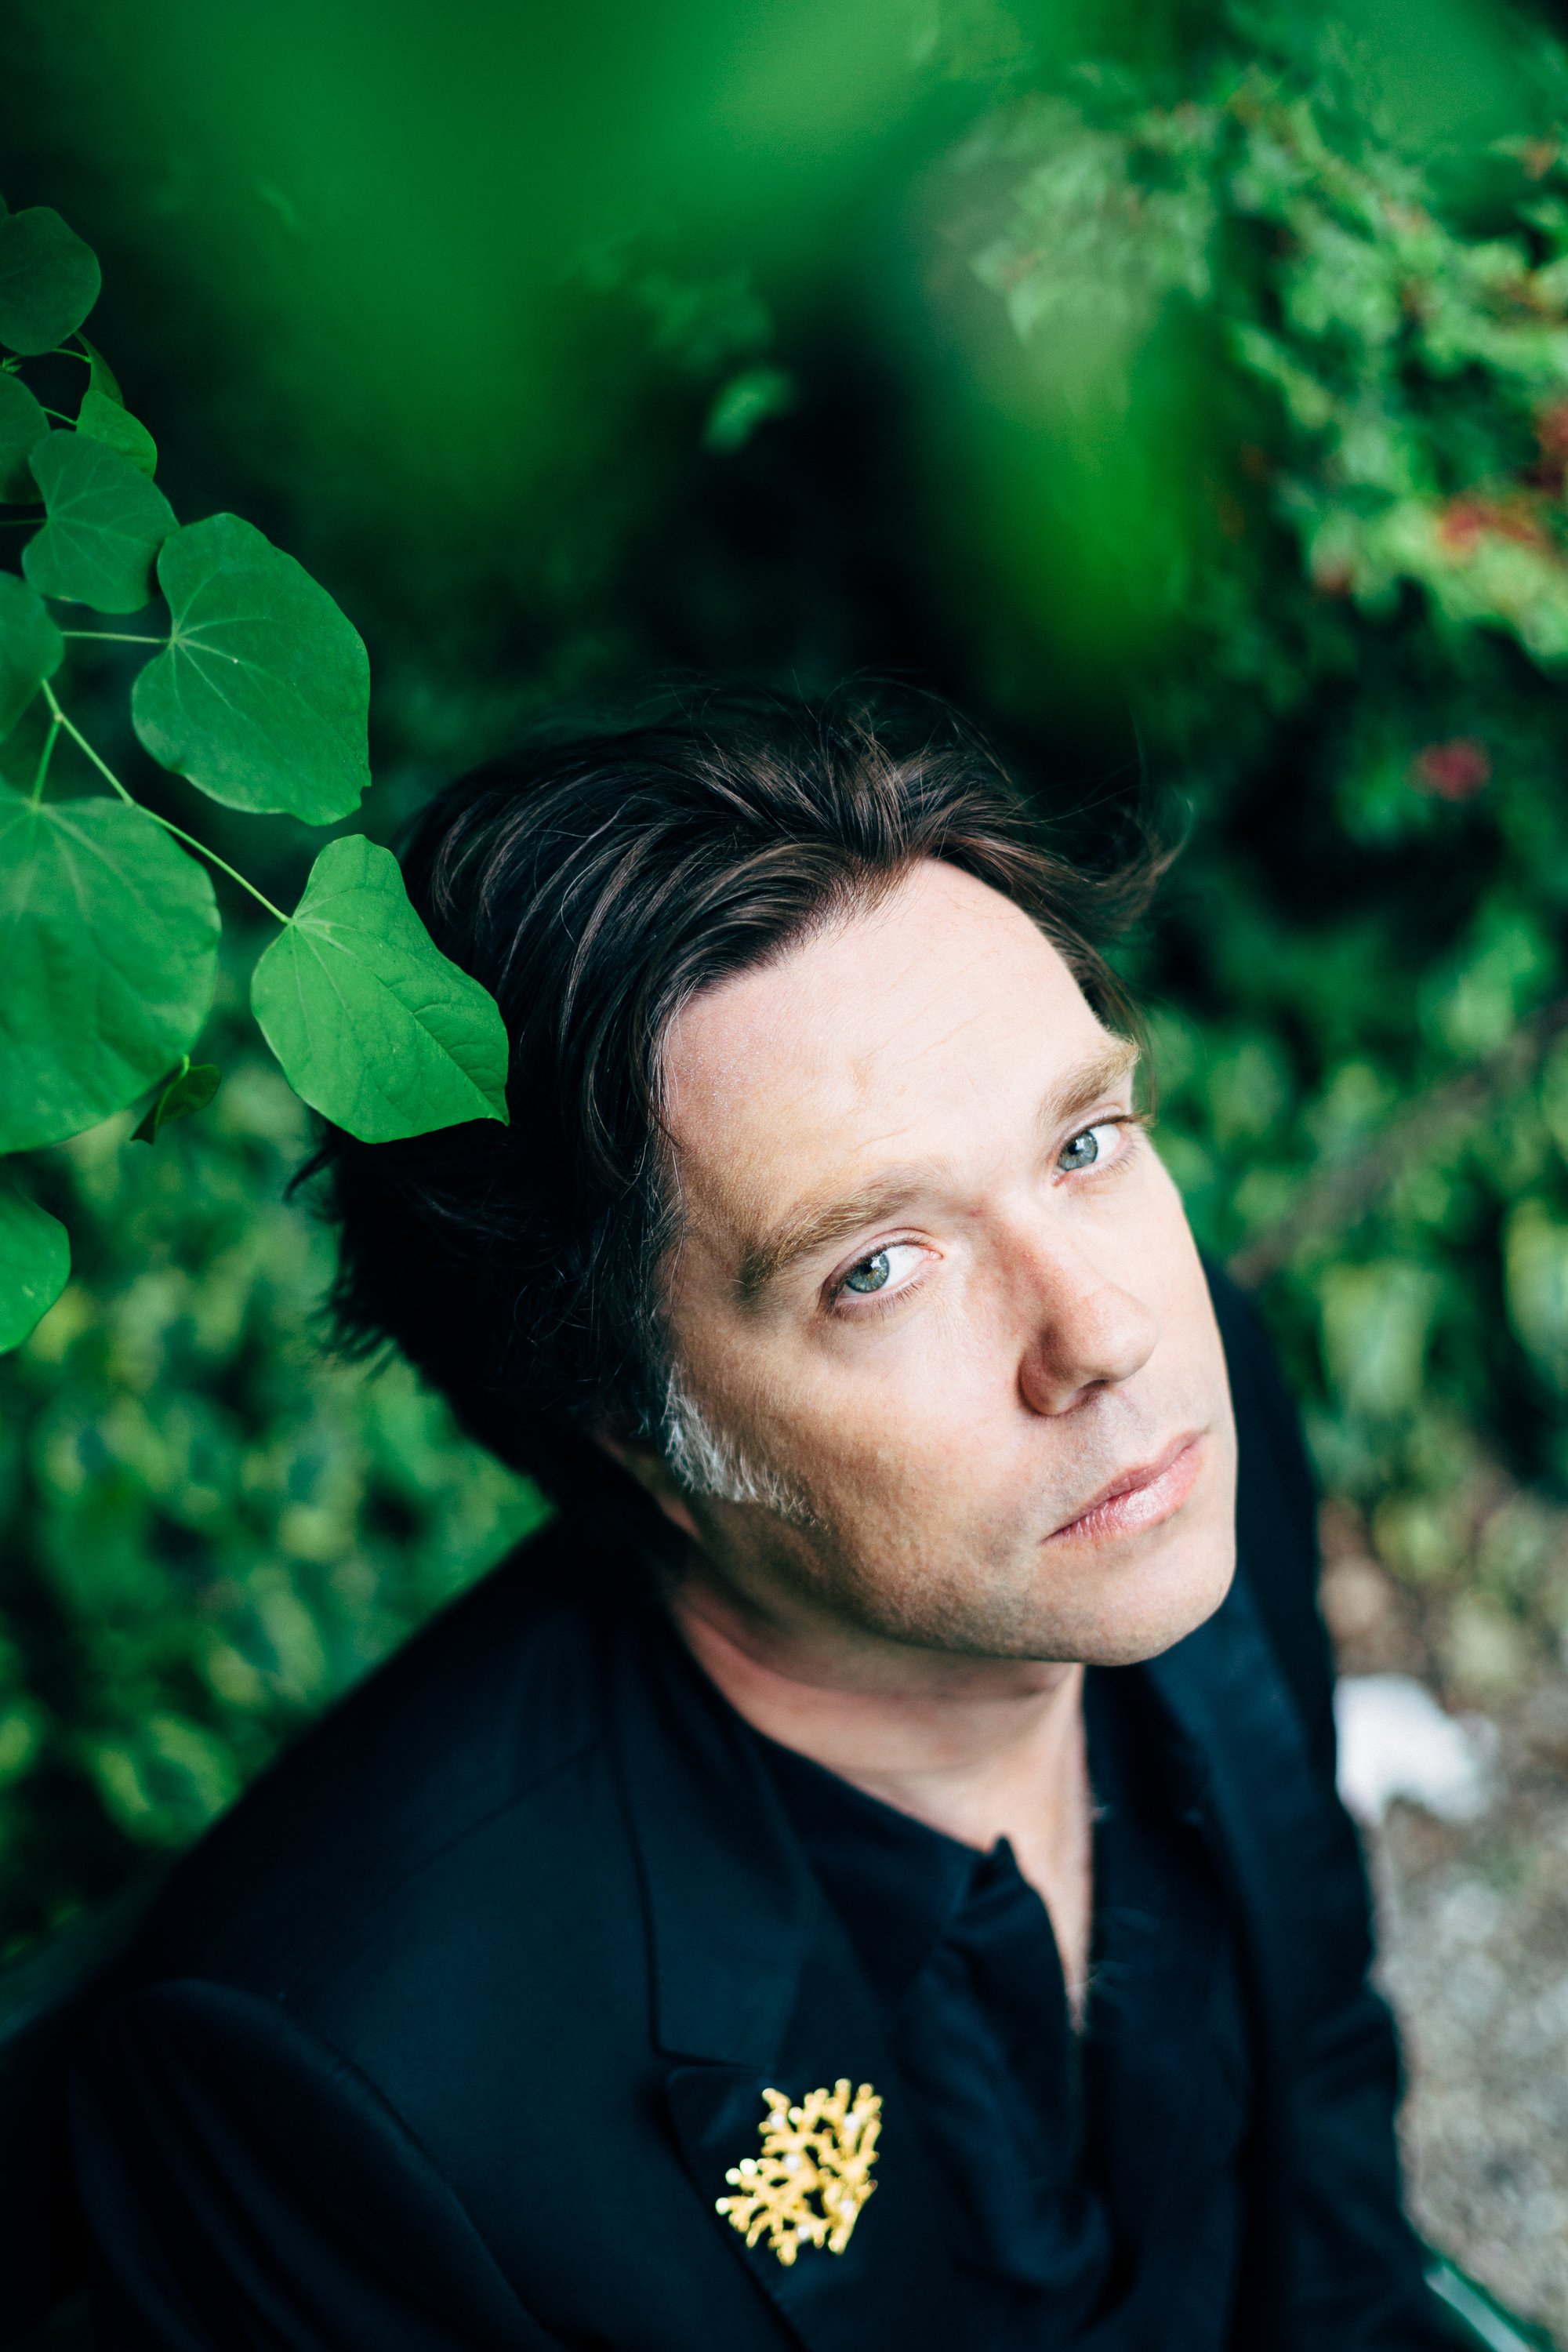 Rufus Wainwright for The New York Times